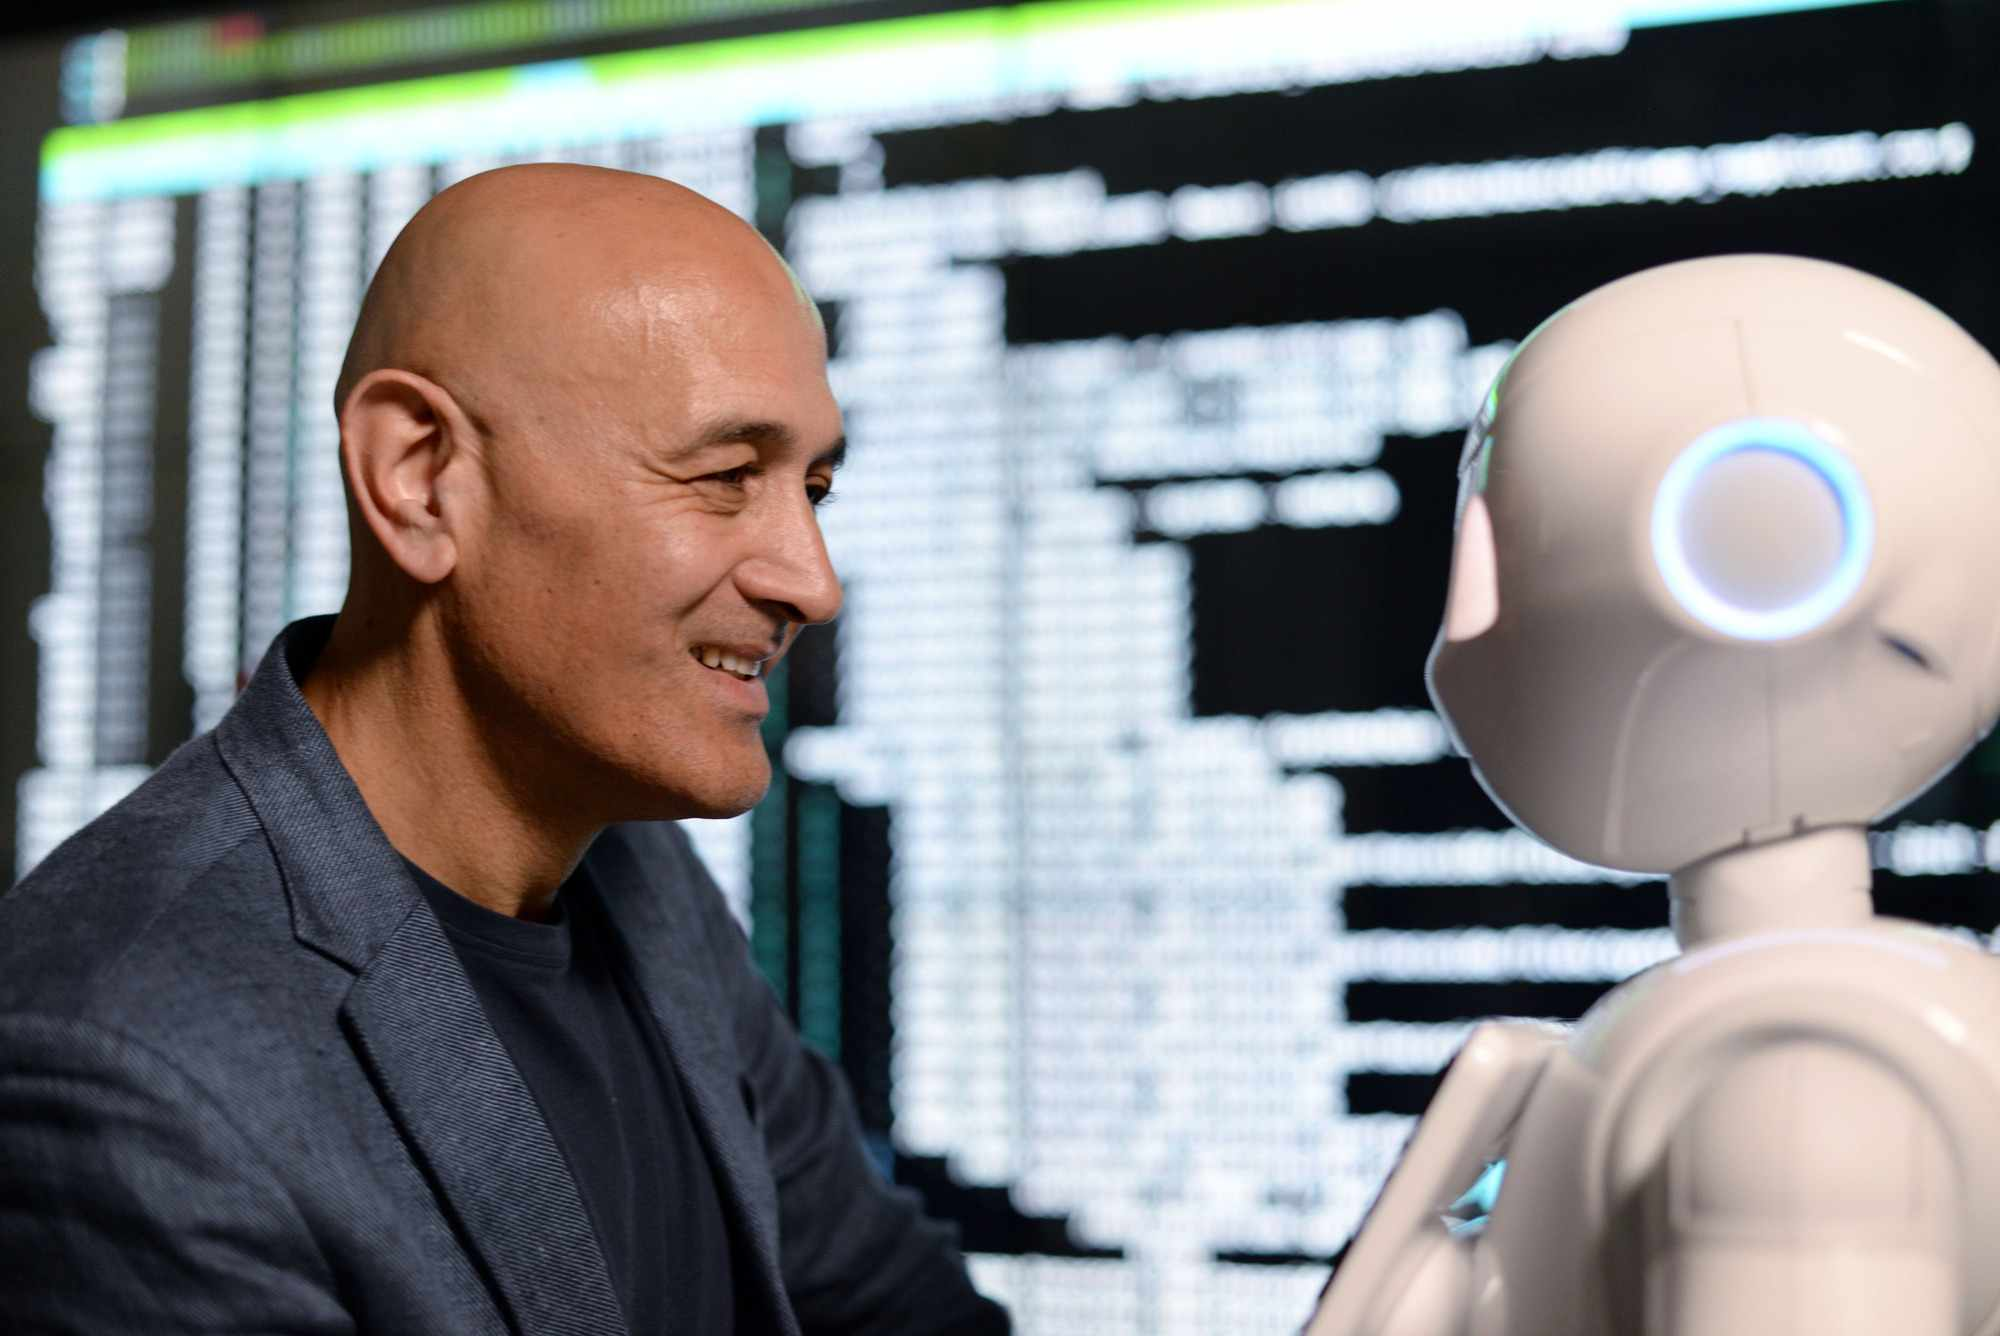 Professor Jim Al-Khalili befriends Alana - an advanced conversational AI © BBC/Wingspan Productions/Jodie Adams